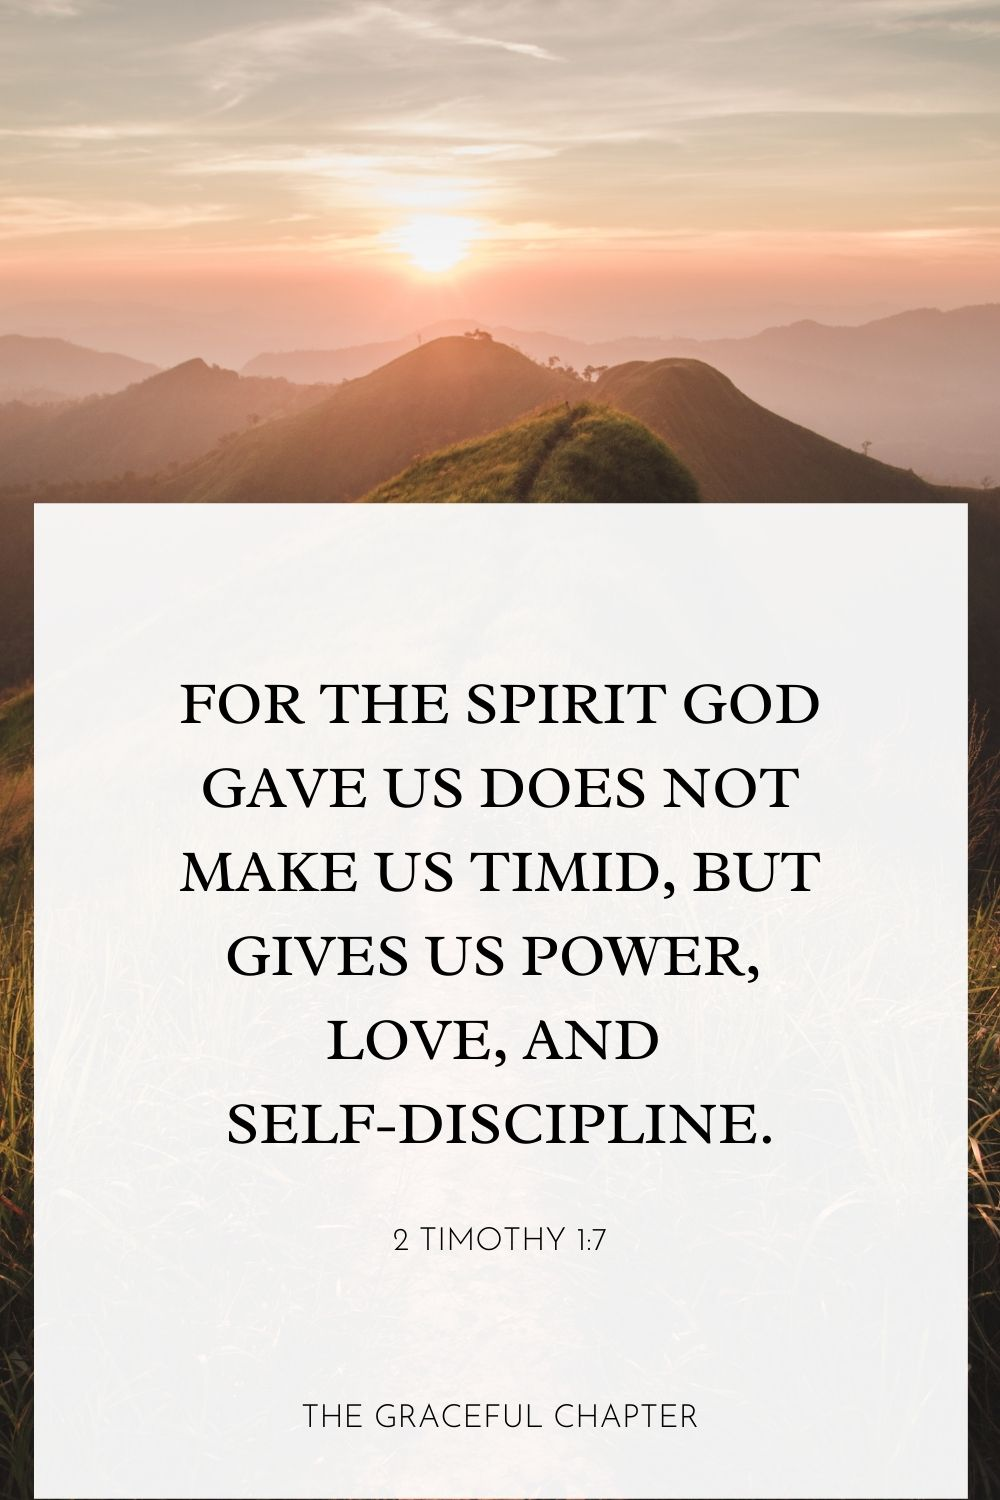 For the Spirit God gave us does not make us timid, but gives us power, love, and self-discipline.